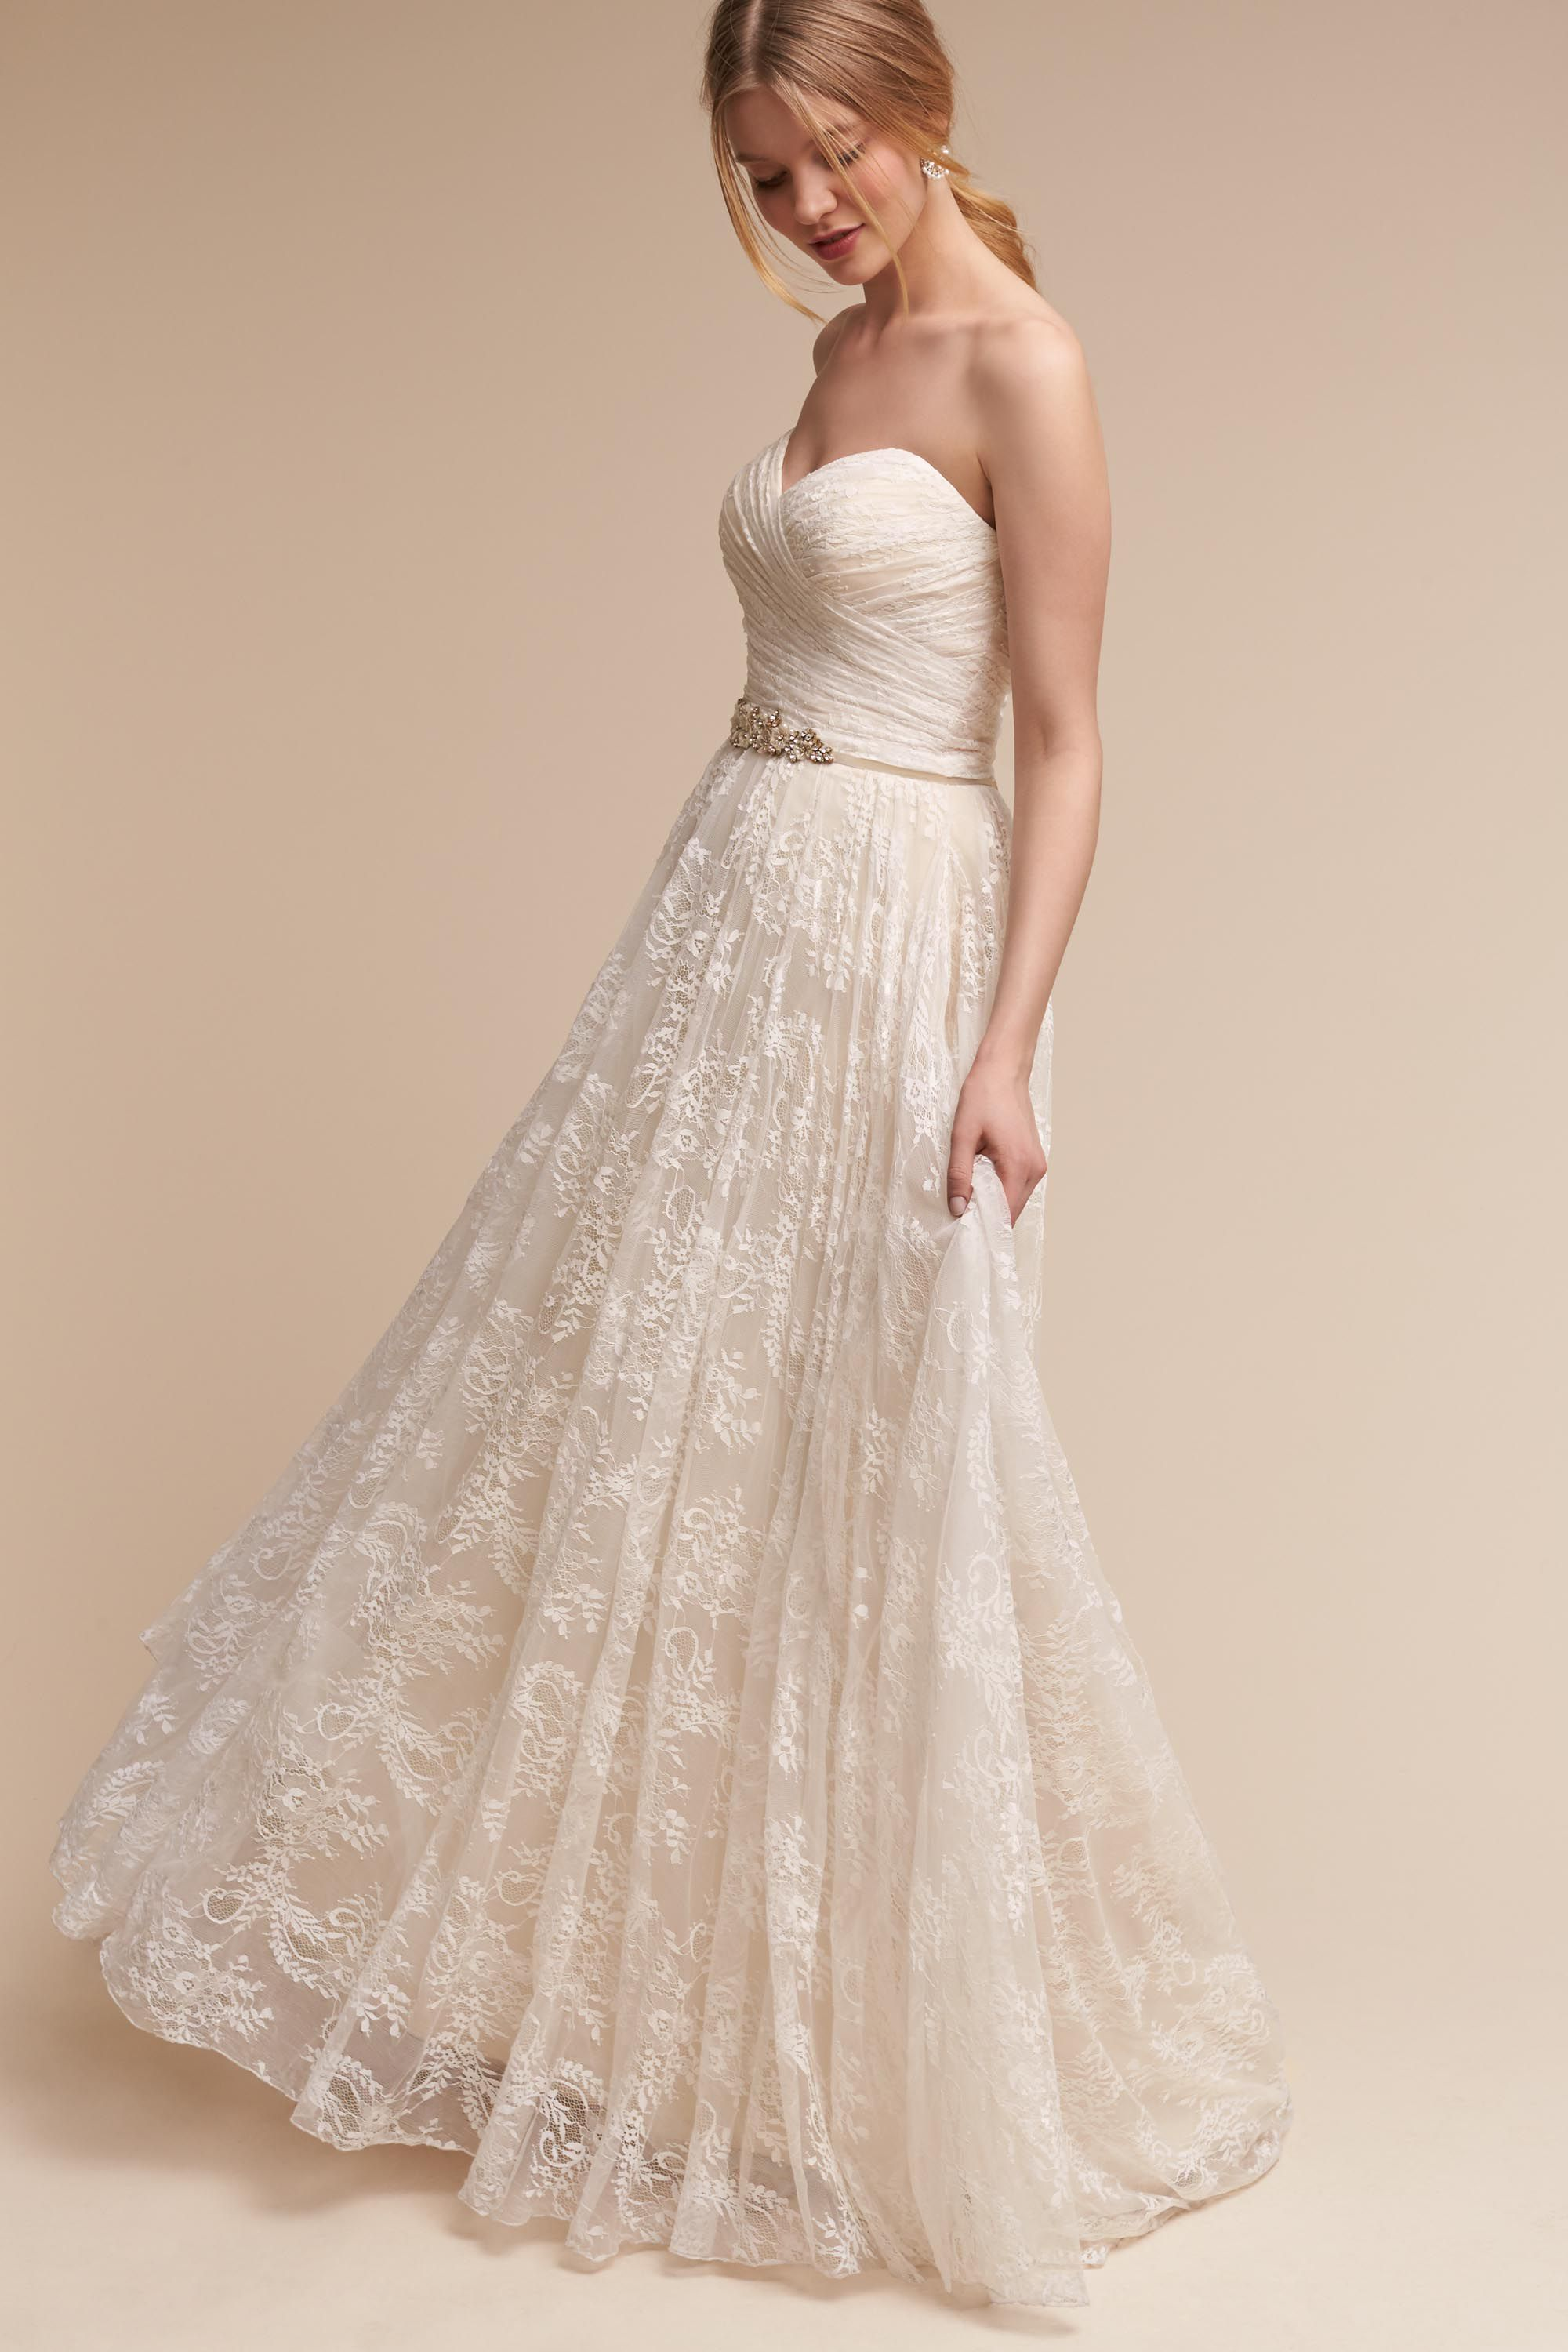 Wedding A Line Wedding Dresses a line wedding dresses 2015 dress styles bhldn freesia gown gown